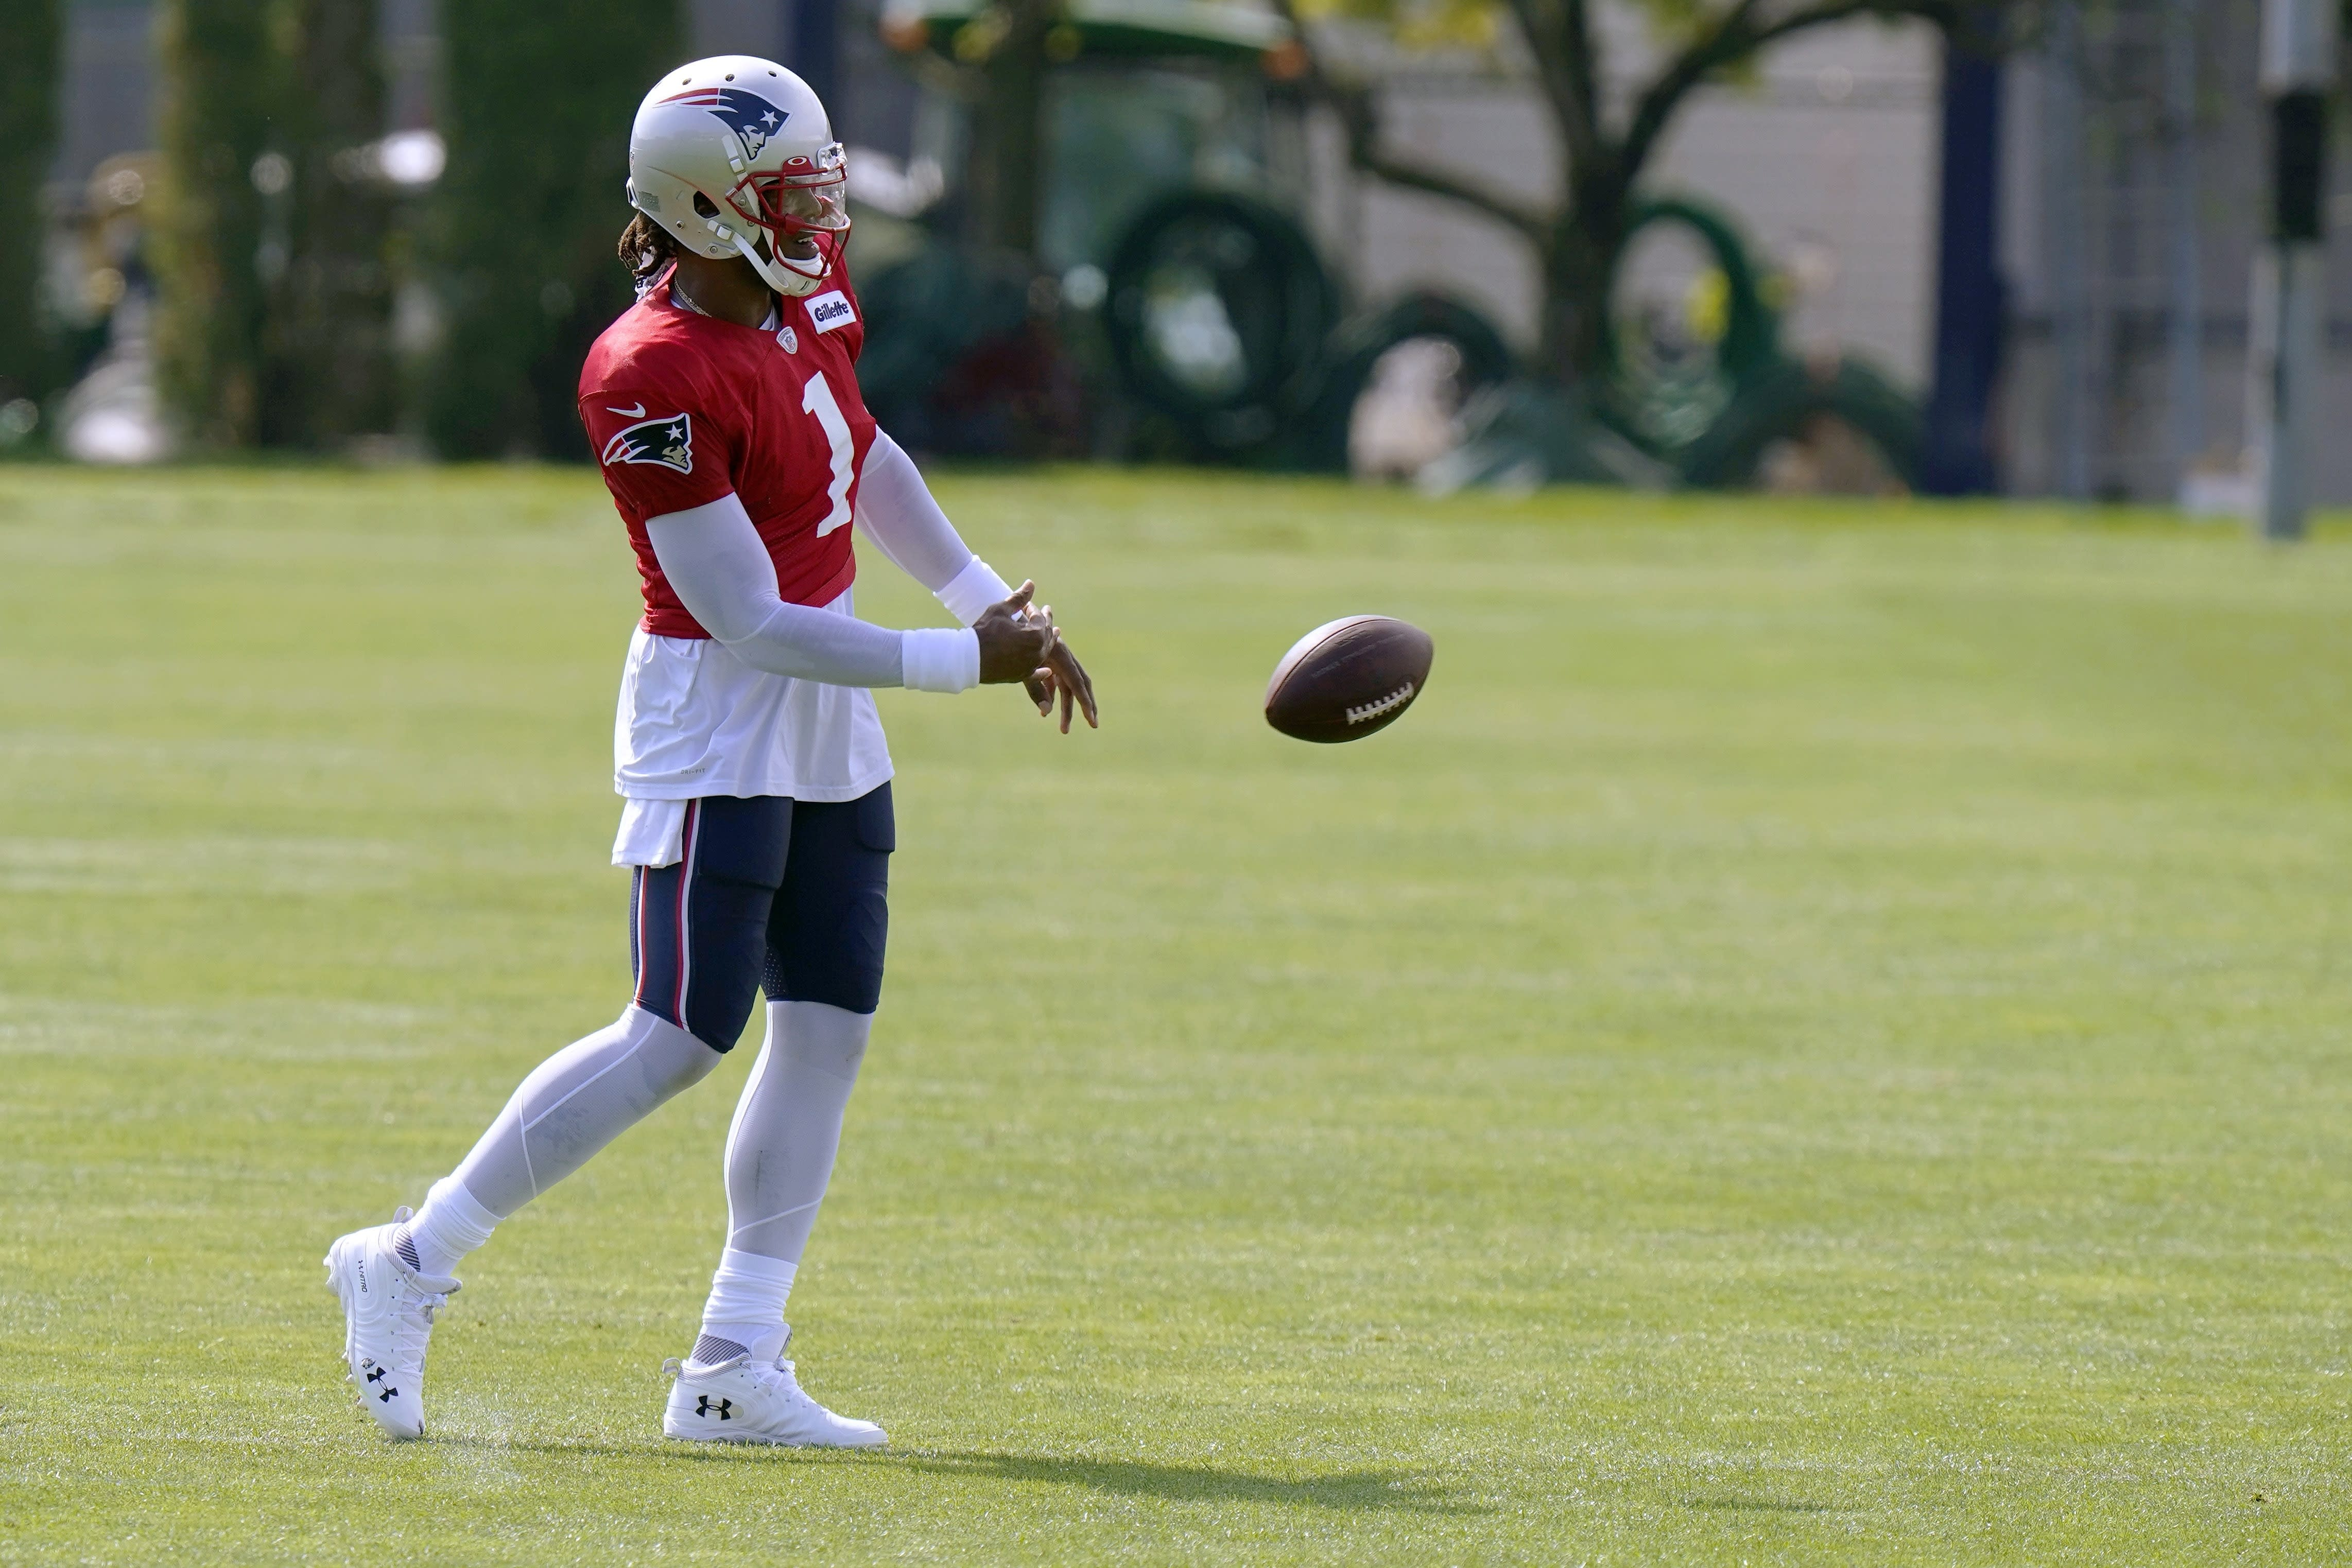 New England Patriots quarterback Cam Newton tosses the football during an NFL football training camp practice, Monday, Aug. 24, 2020, in Foxborough, Mass. (AP Photo/Steven Senne, Pool)